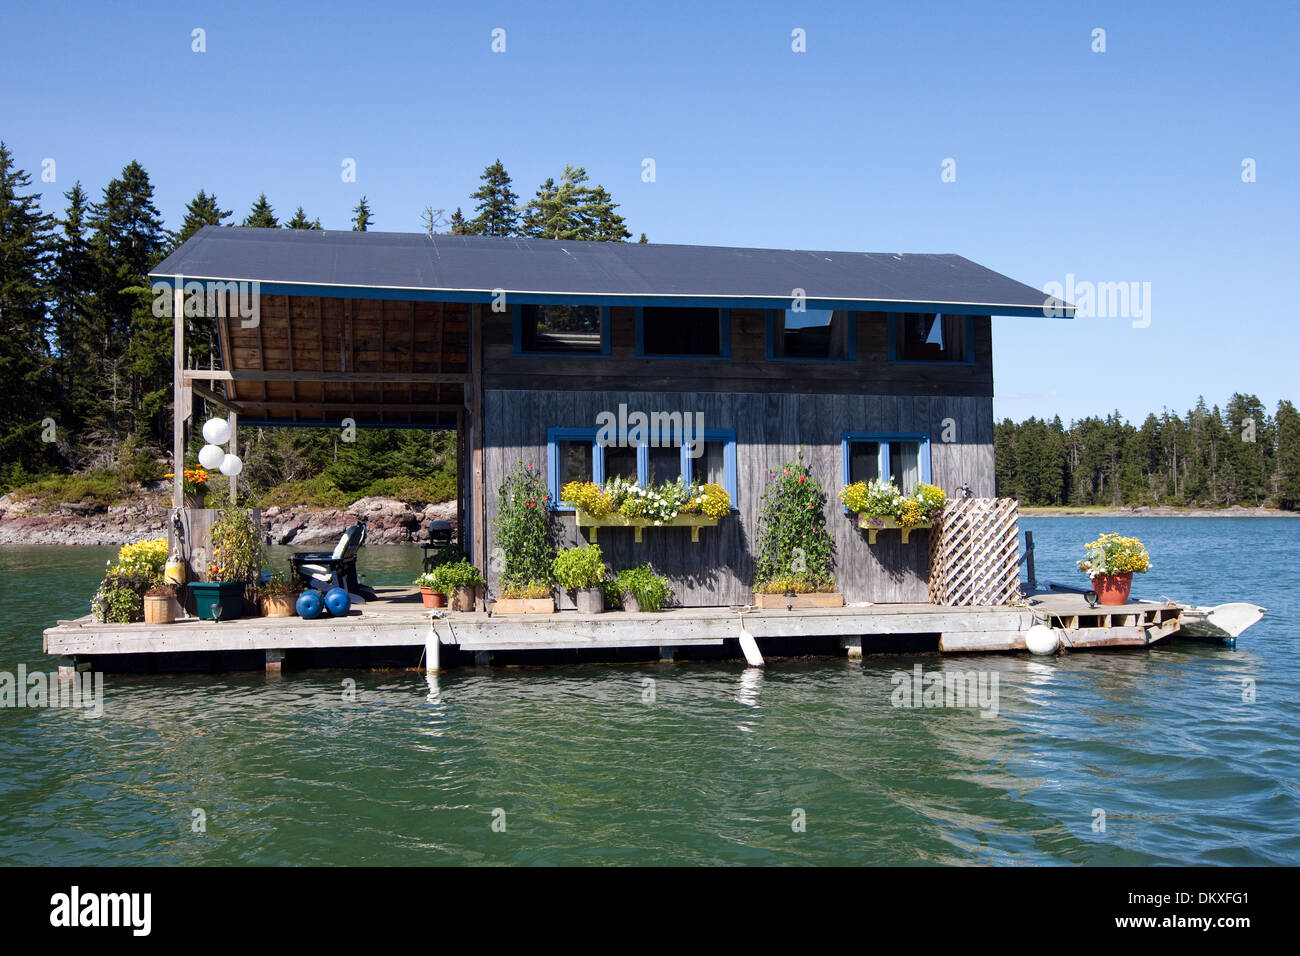 Adorable Floating House, Perry Creek, Vinalhaven, Maine - Stock Image